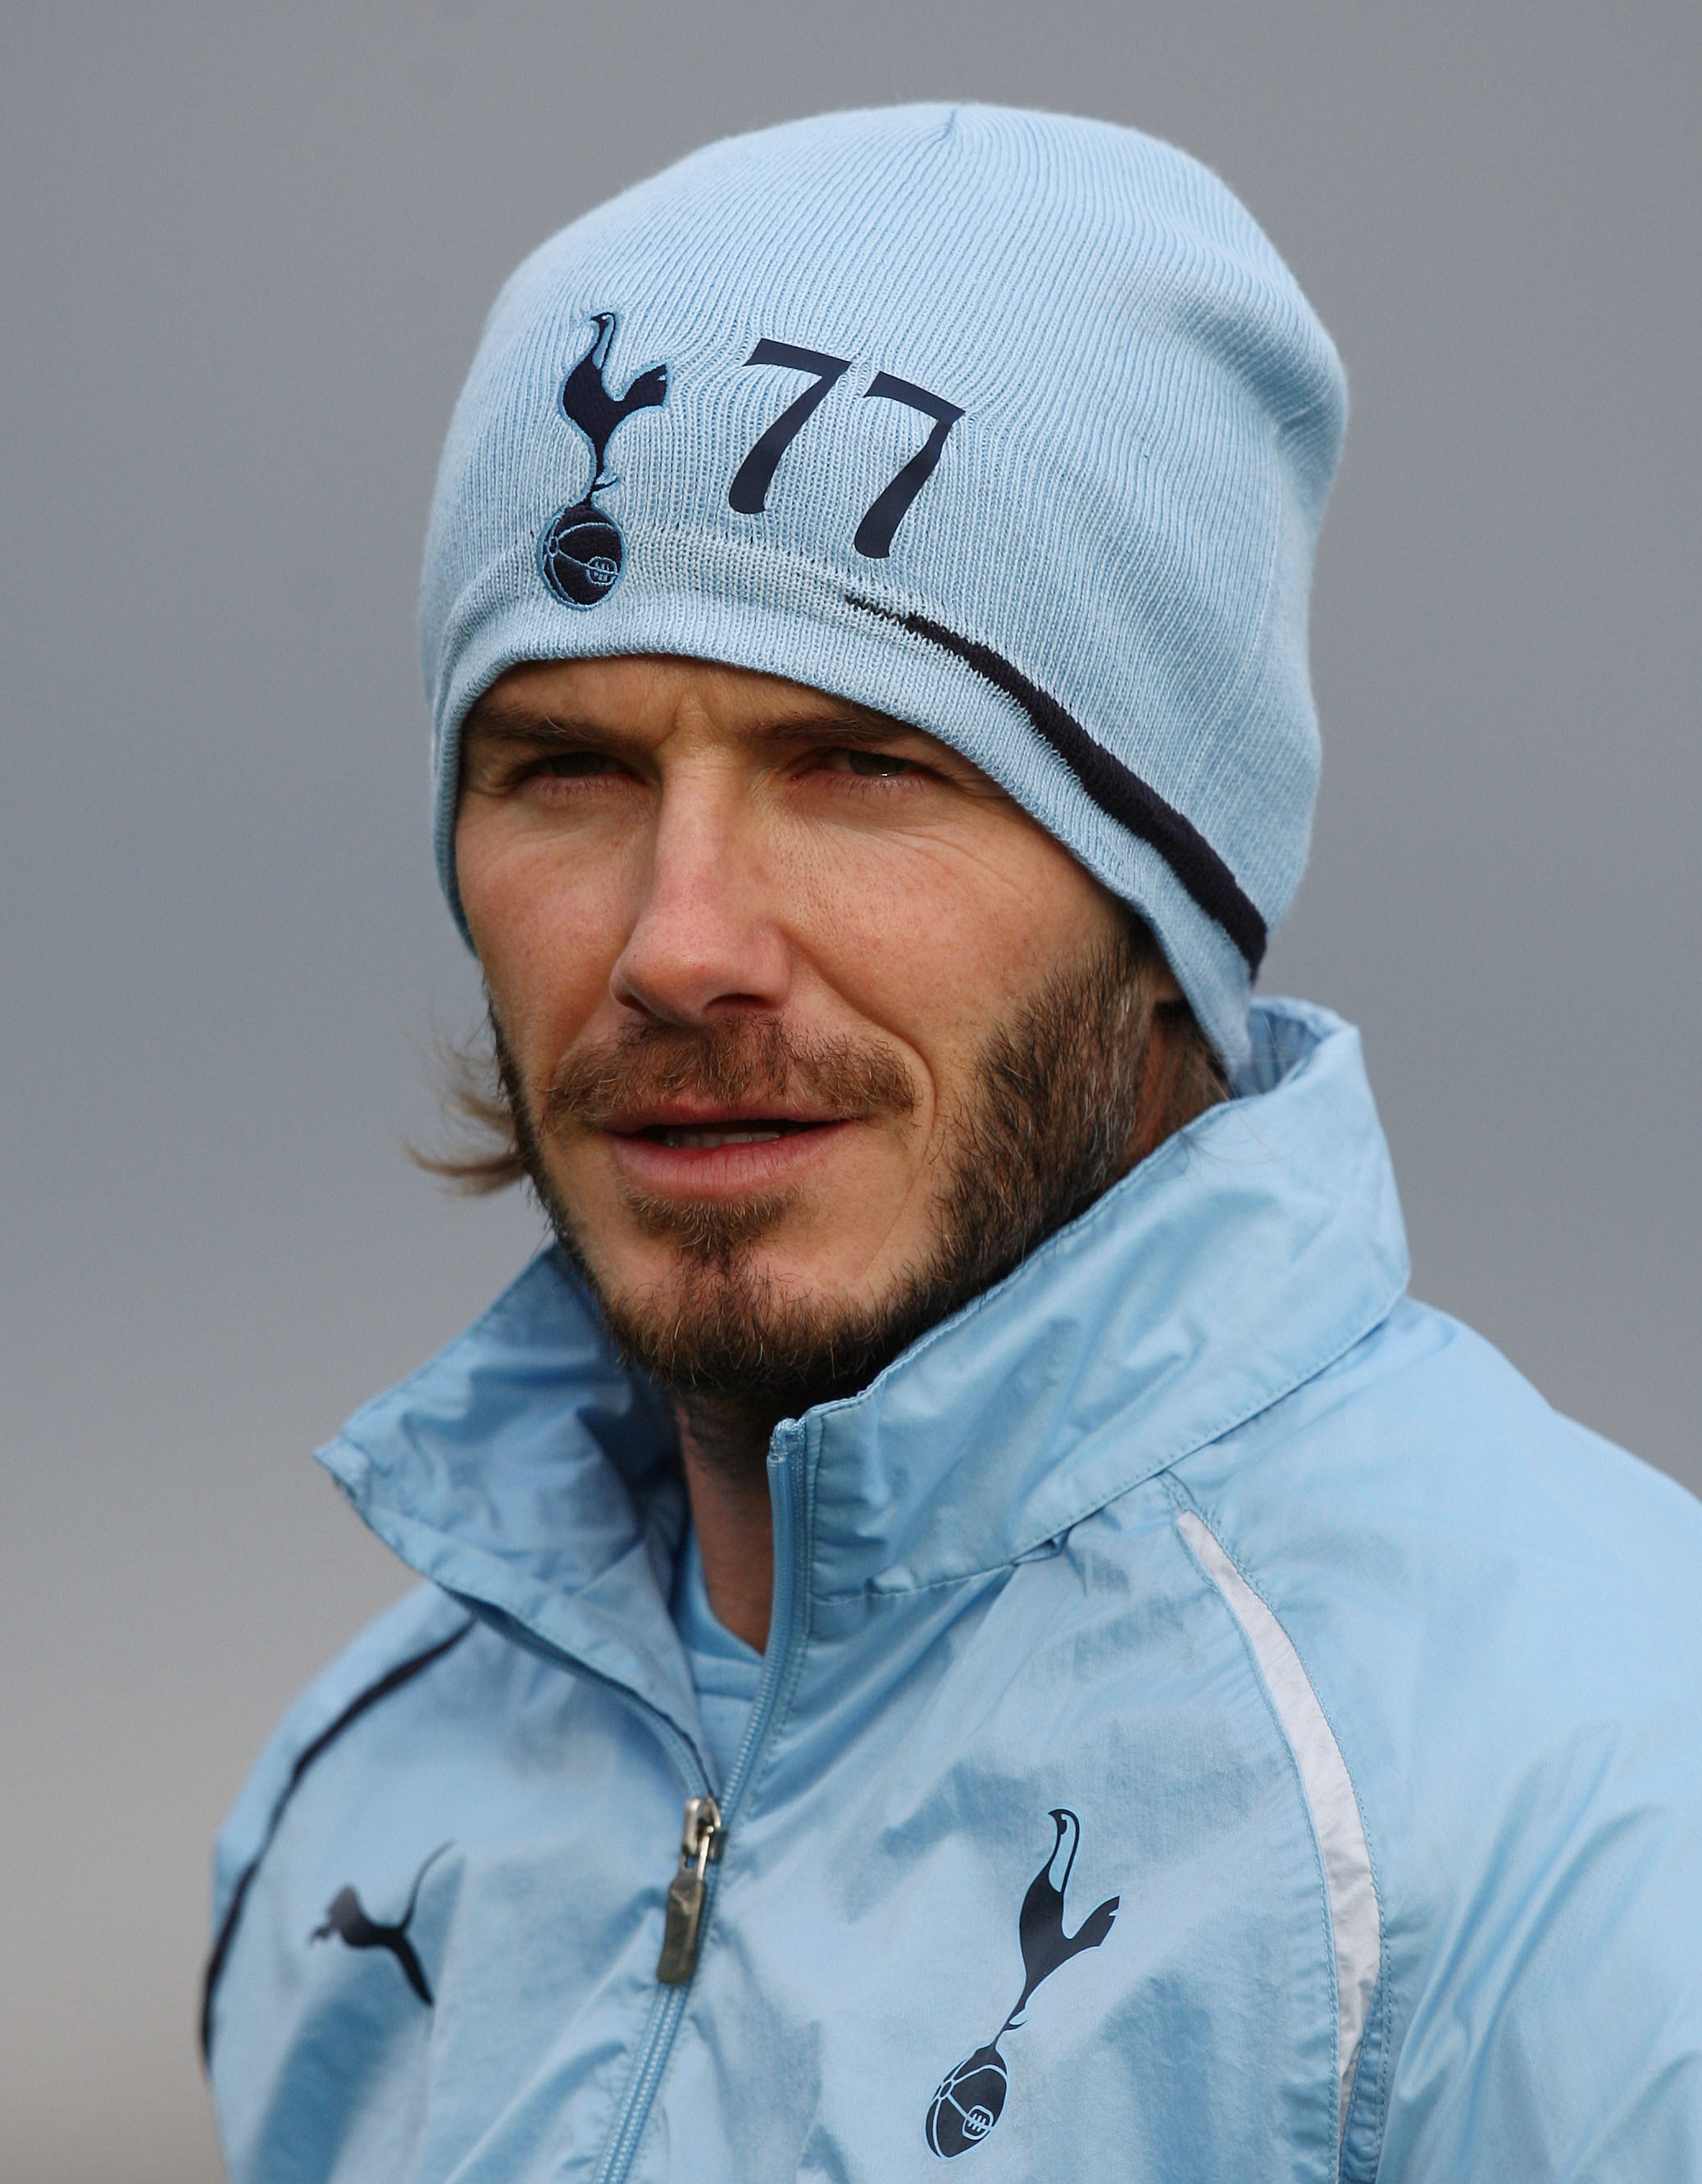 CHIGWELL, ENGLAND - JANUARY 11:  David Beckham takes part in a Tottenham Hotspur training session at Tottenham Hotspur training ground on January 11, 2011 in Chigwell, England.  (Photo by Paul Childs - Pool/Getty Images)